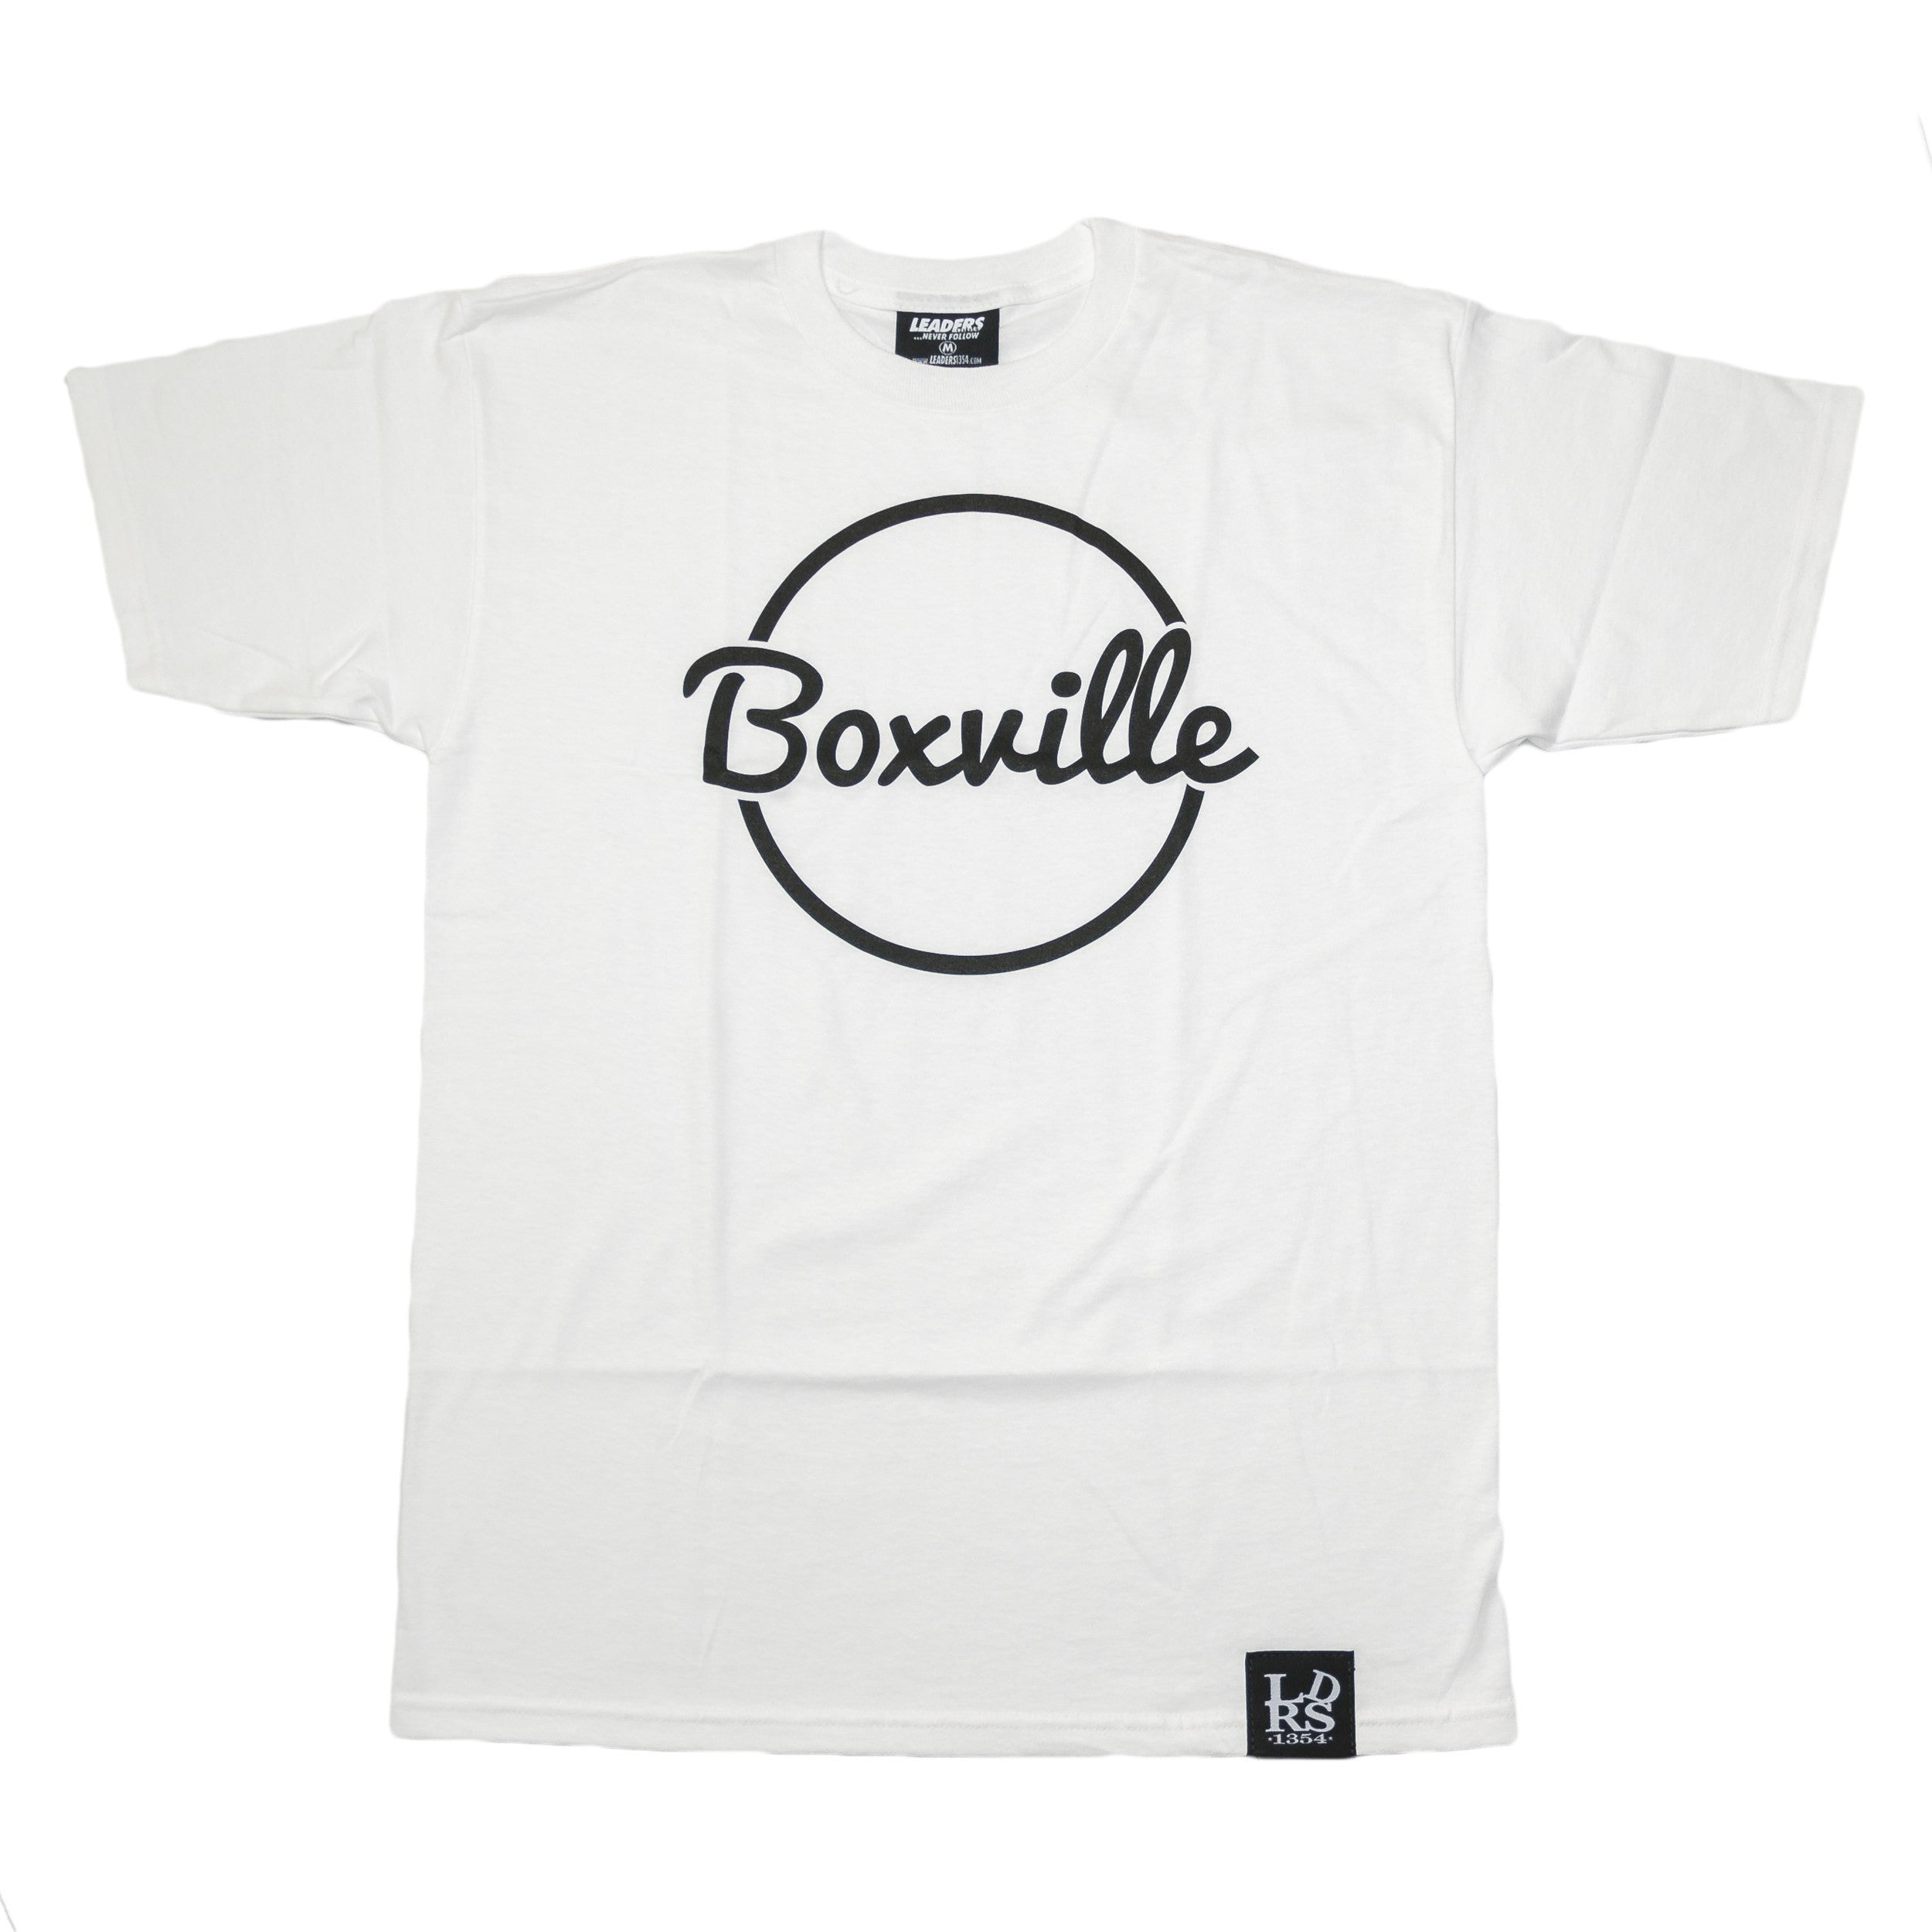 Boxville Tee - leaders1354